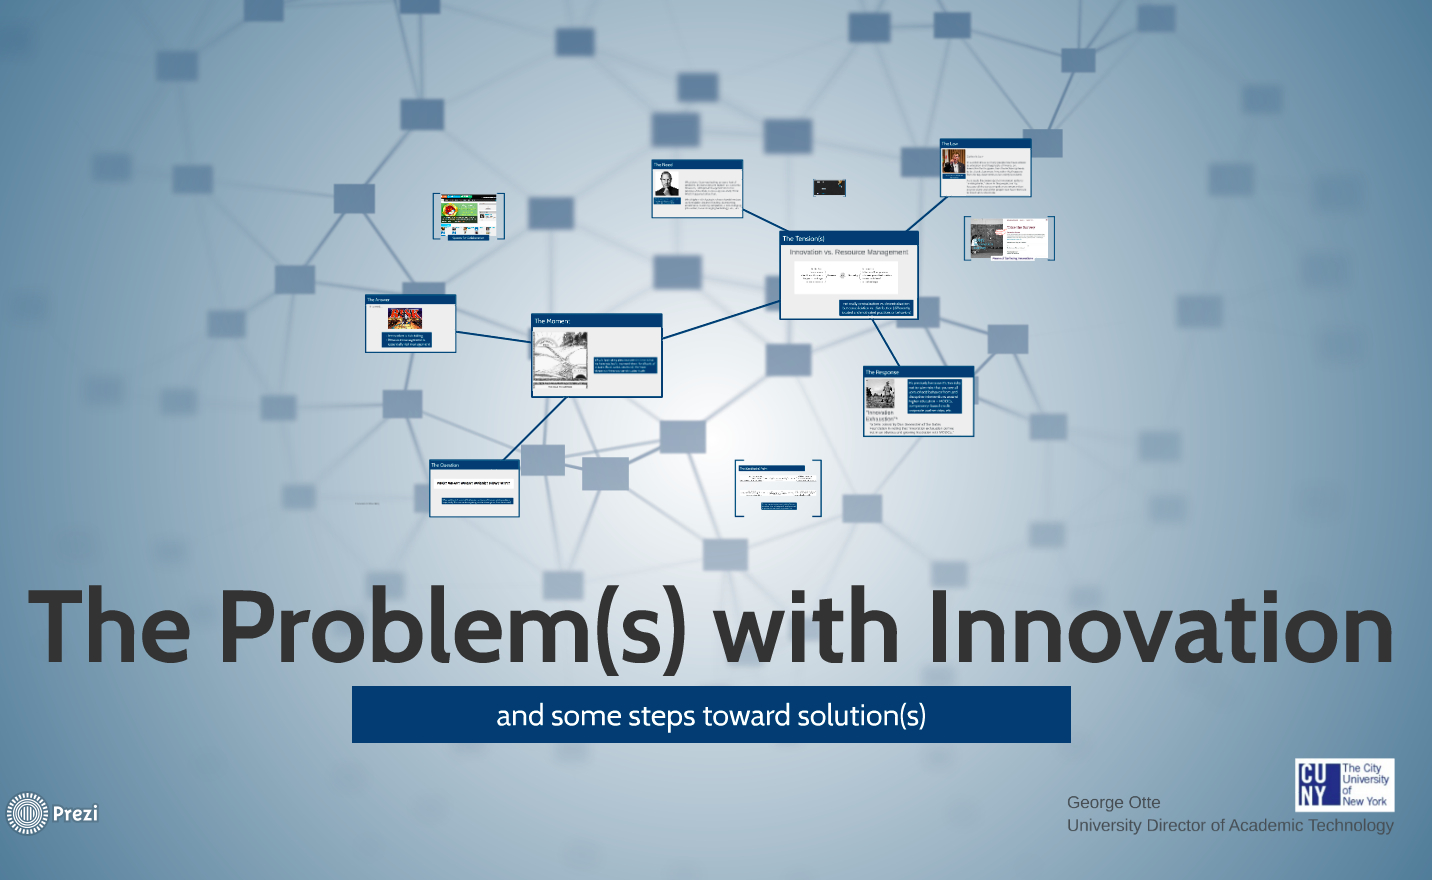 The Problem(s) with Innovation